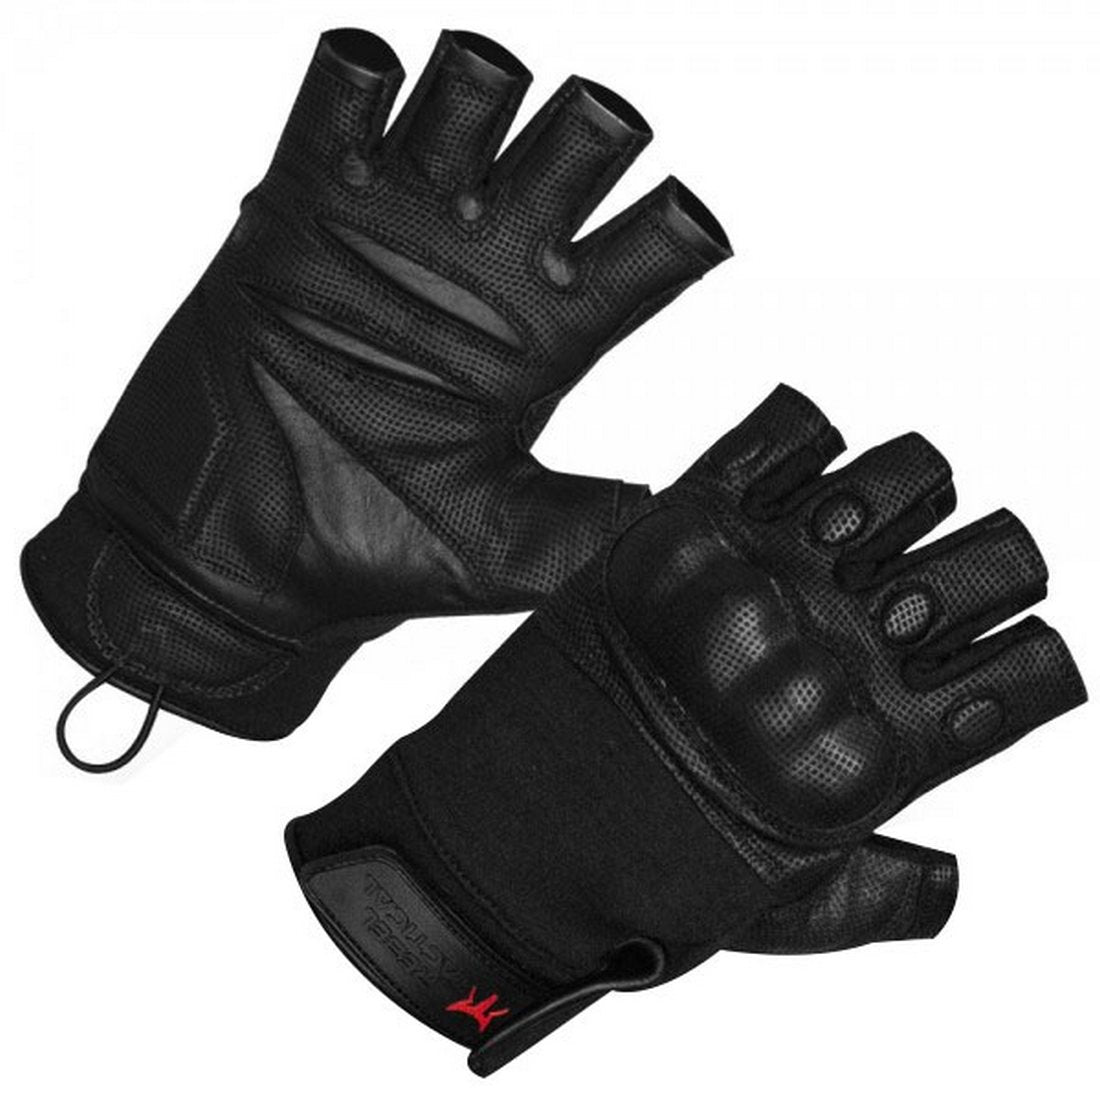 Rebel Tactical S.W.A.T. Force Half Finger Hard Knuckle Tactical Gloves